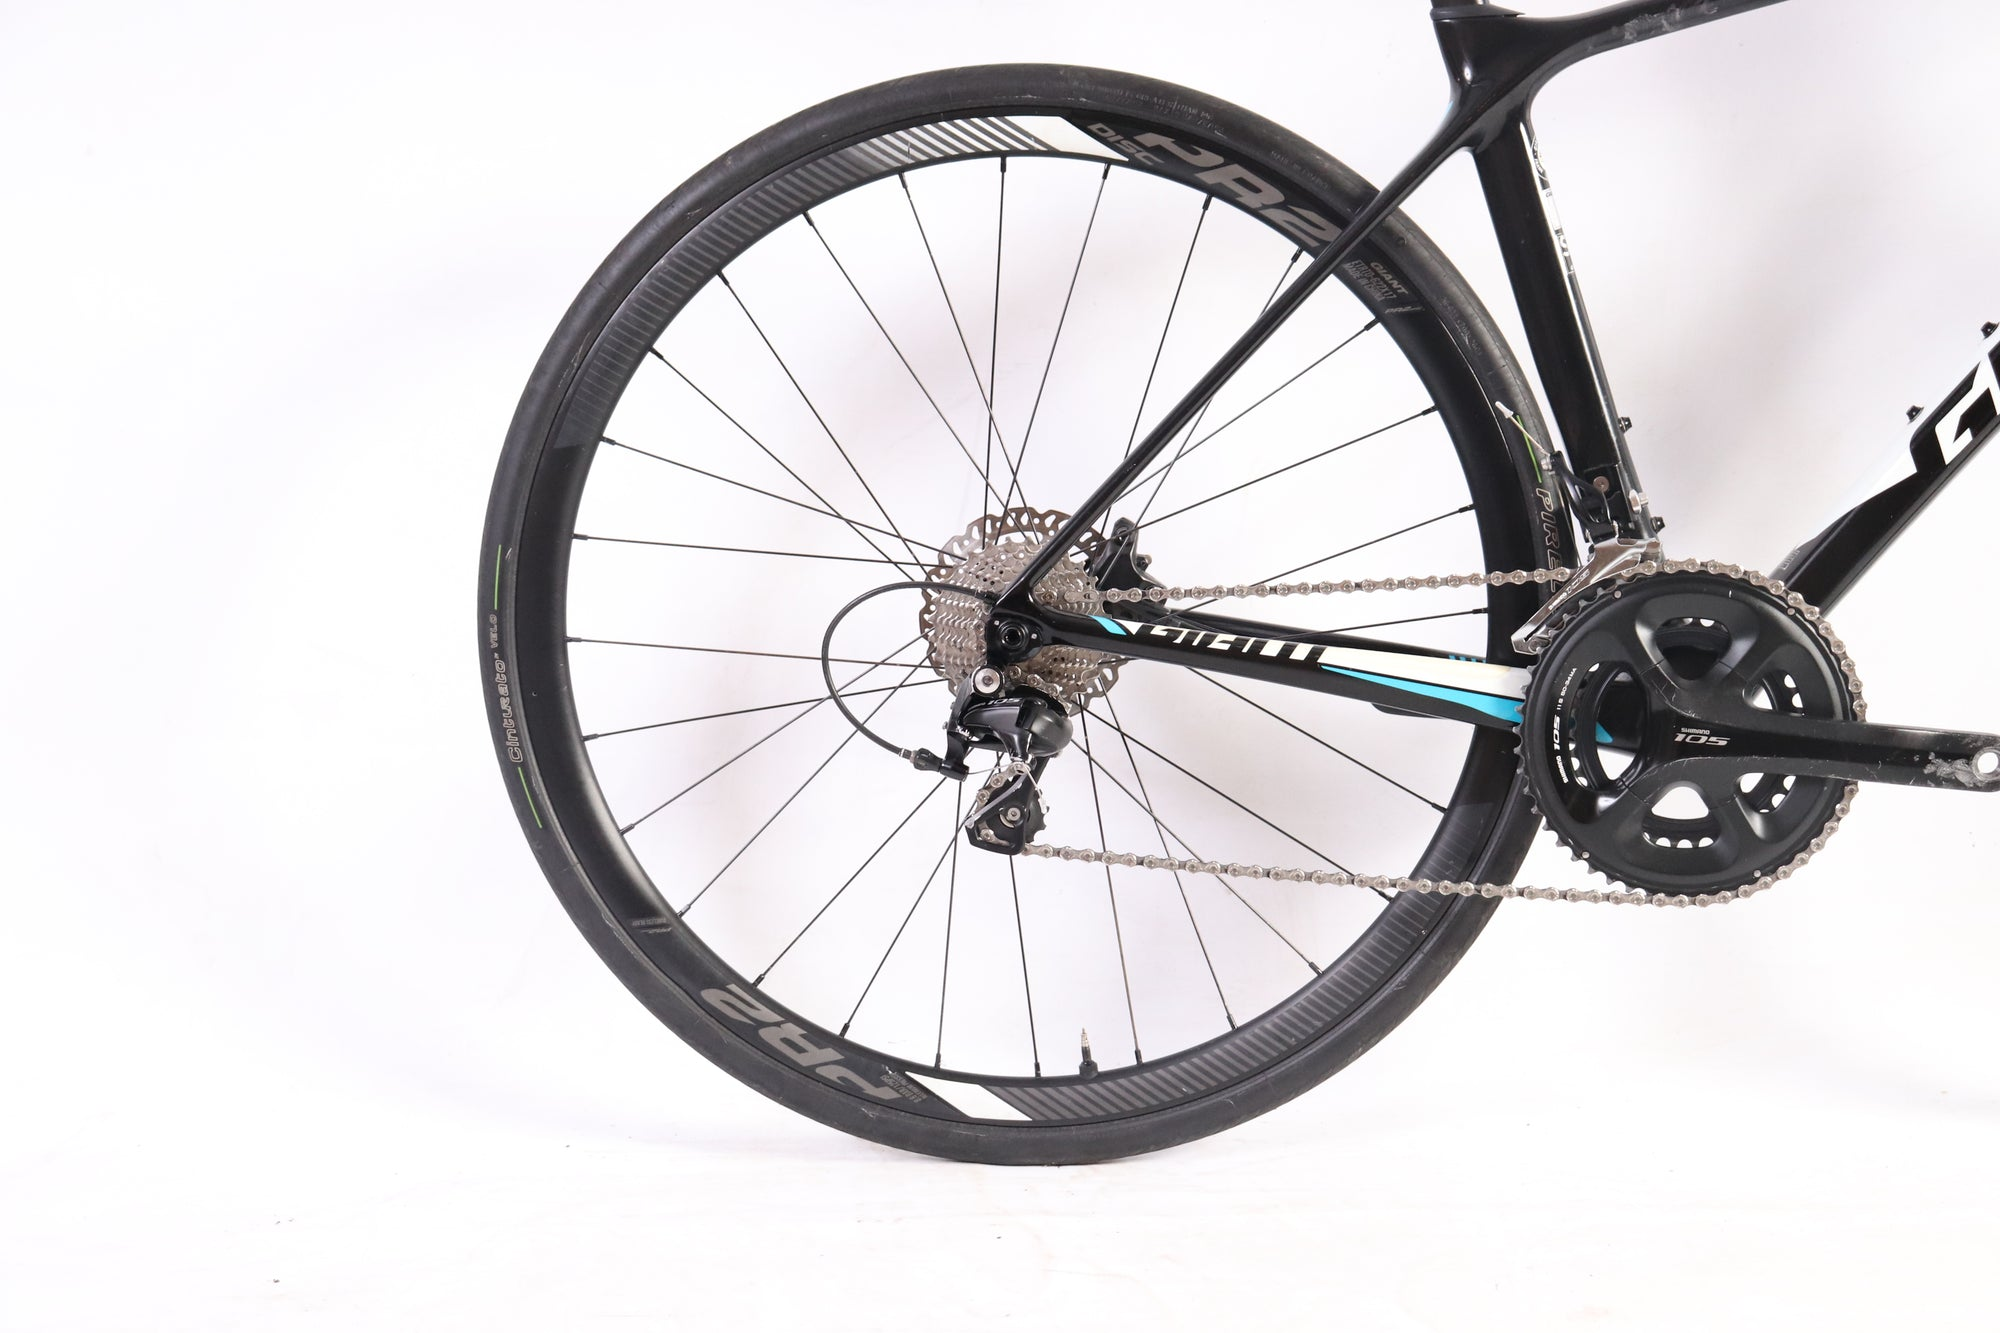 2018 Giant TCR Advanced Disc, Shimano 105, Size Small